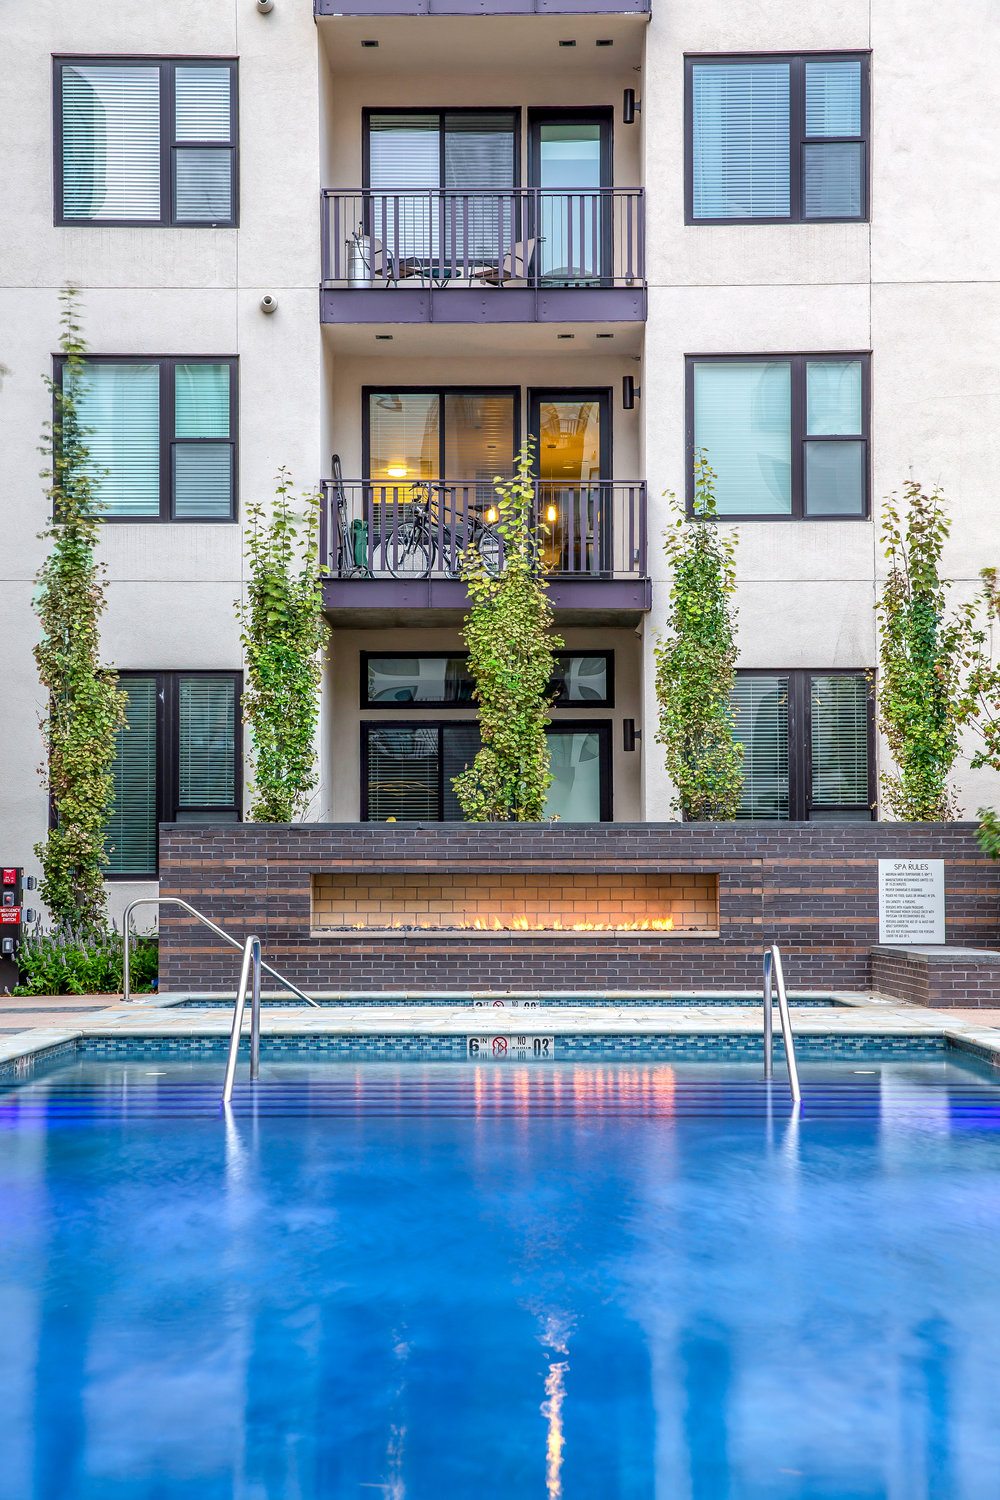 "<img src="" studioINSITE_The_Douglass_Pool_Deck "" alt=""Urban Living, Multifamily Courtyard, Amenity Deck, Fire Pit, Grill Area, Shade Structure, Fireplace, Landscape Architecture, Luxury Living, the Douglas, Denver, CO, Colorado Courtyards, Amenity Spaces, Great Courtyard Designs  "" title=""The Douglas  ""/>"